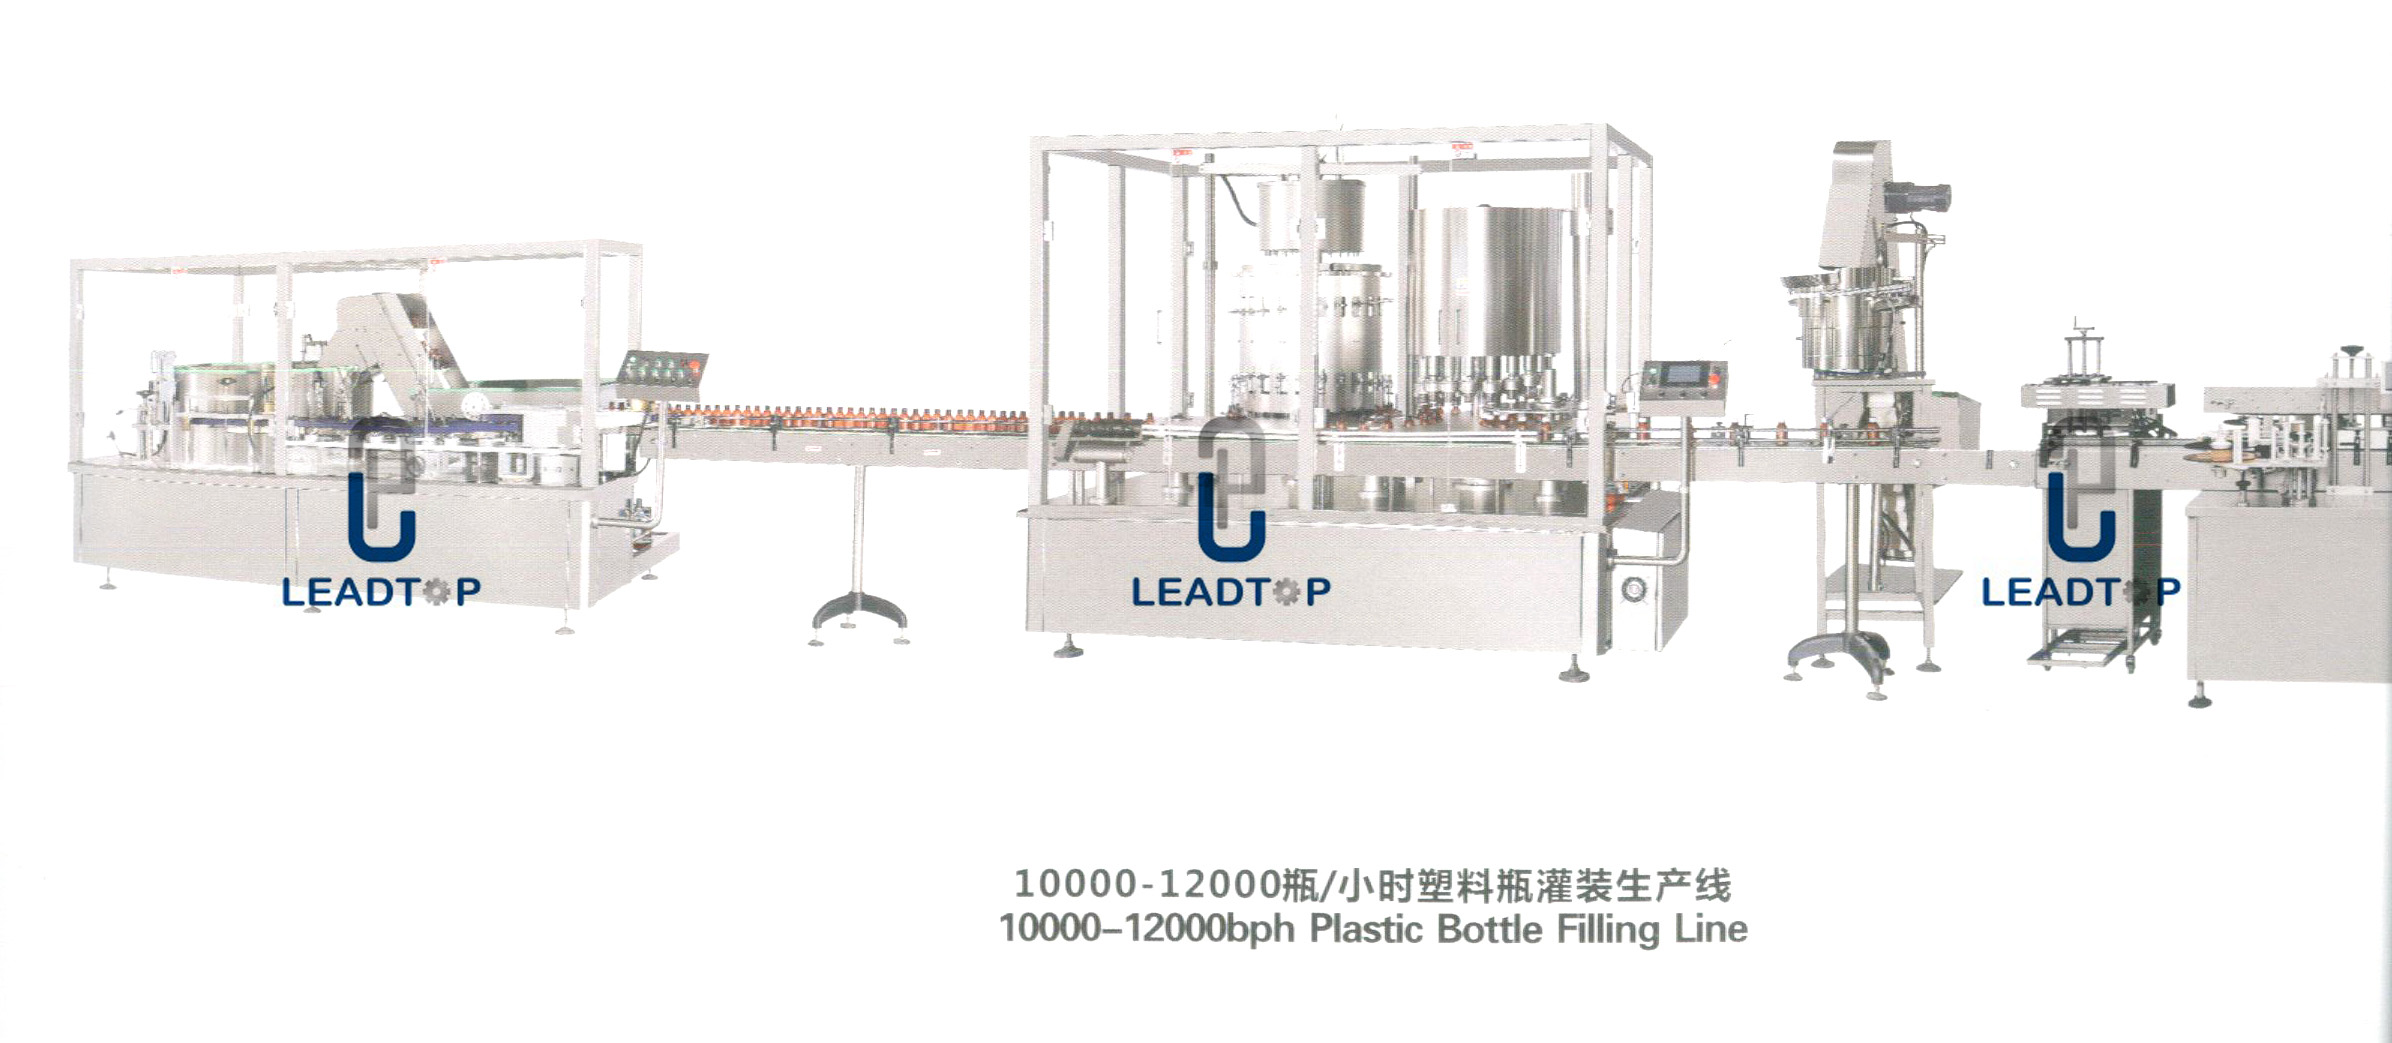 Plastic Bottle Syrup, OralLiquid, Tincture Filling Line